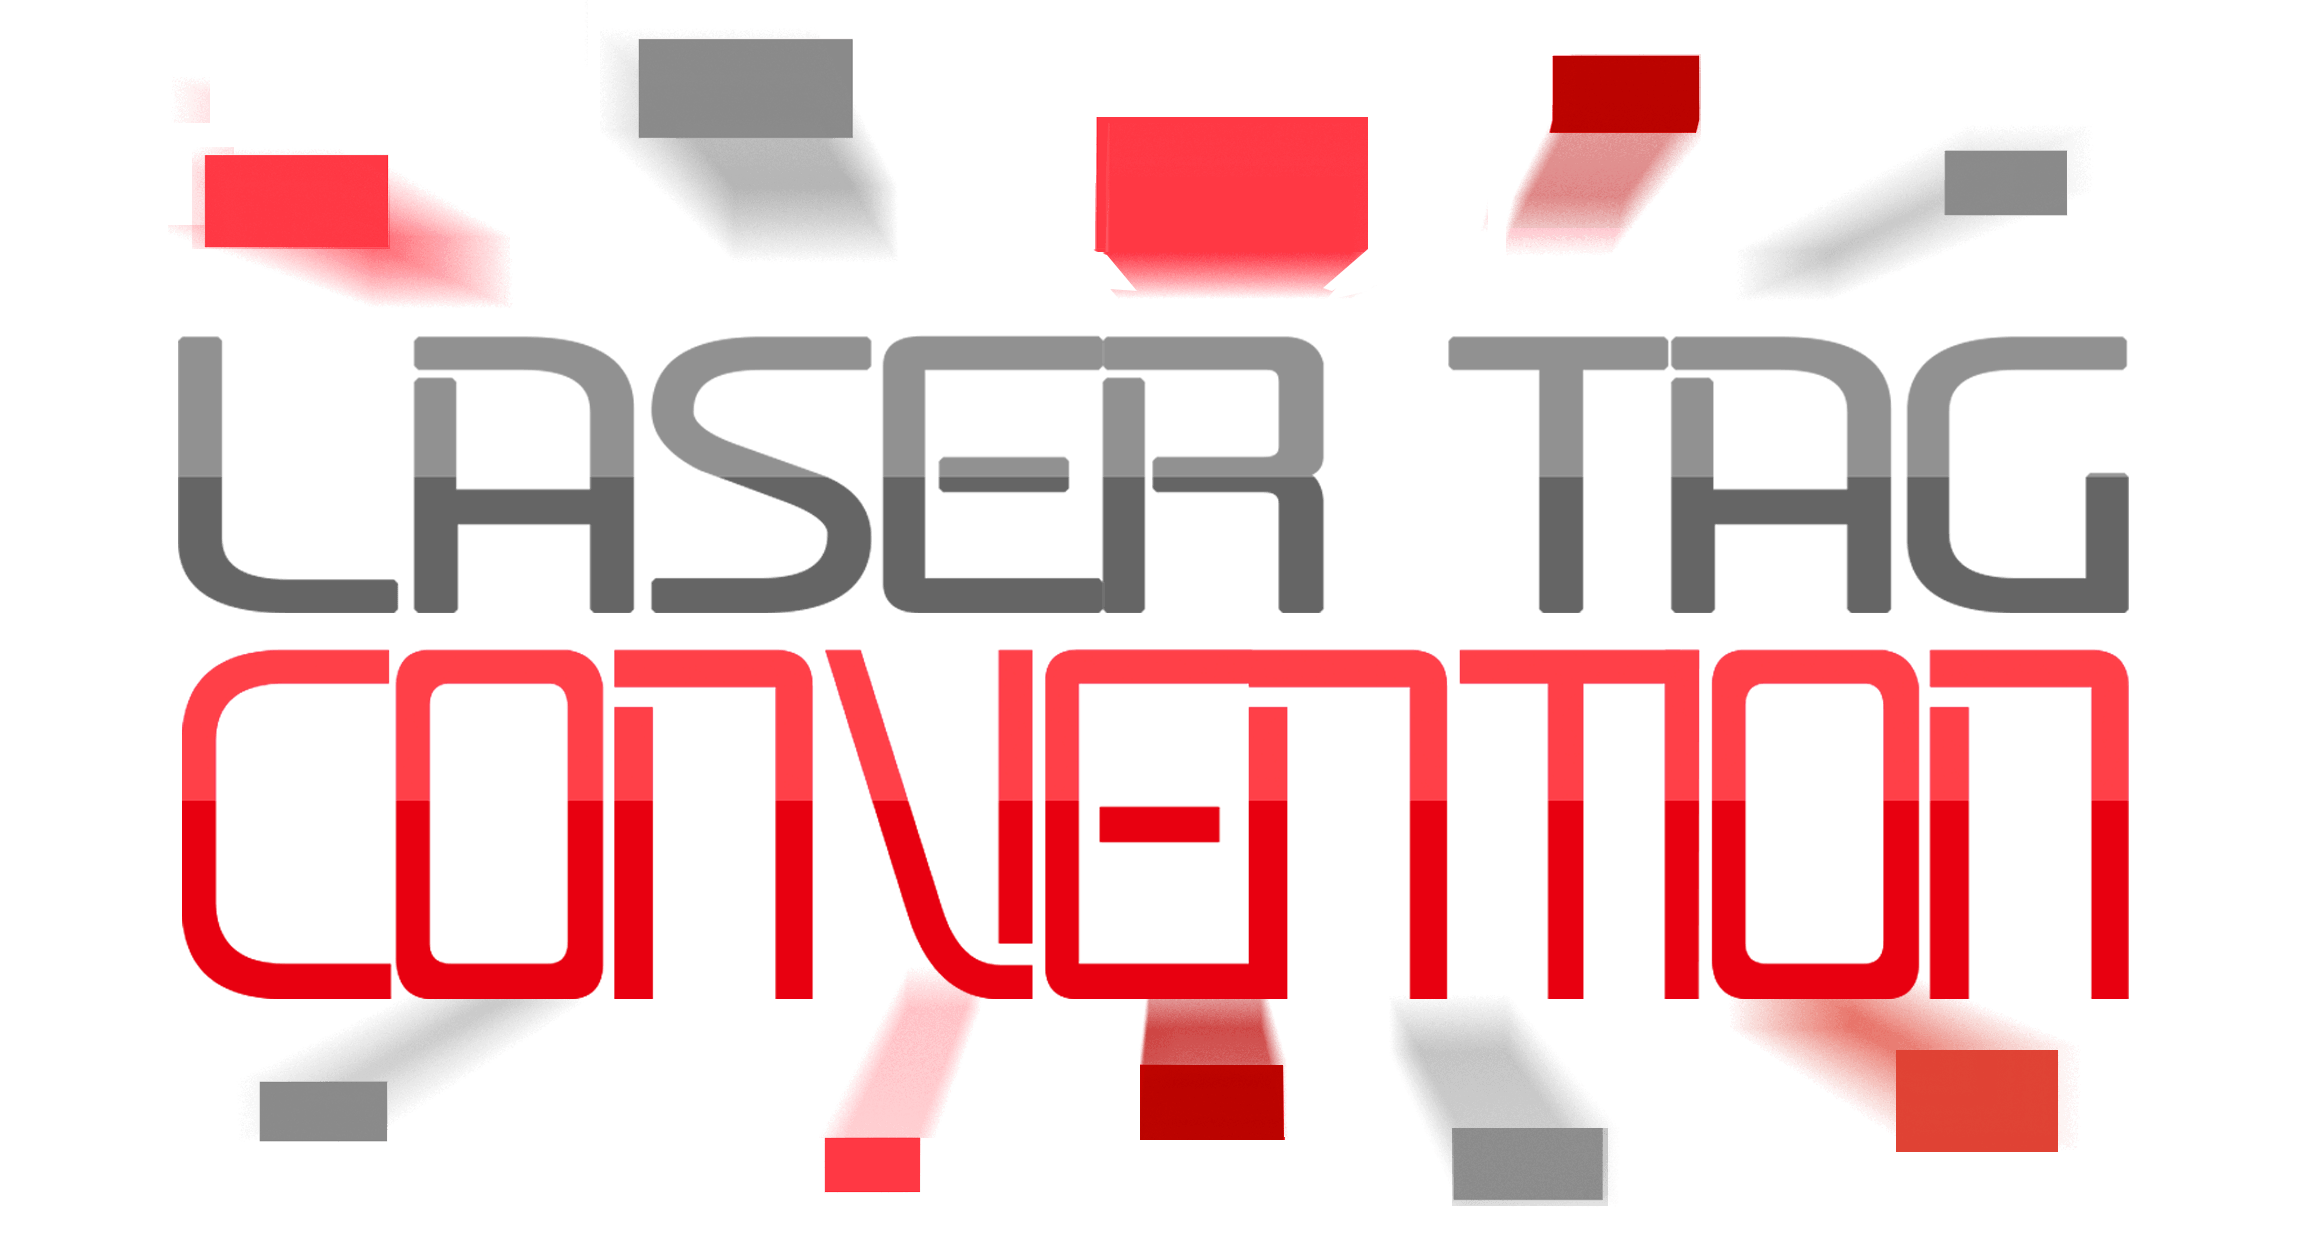 Organizers Report an Industry Success: The 2017 Laser Tag Convention